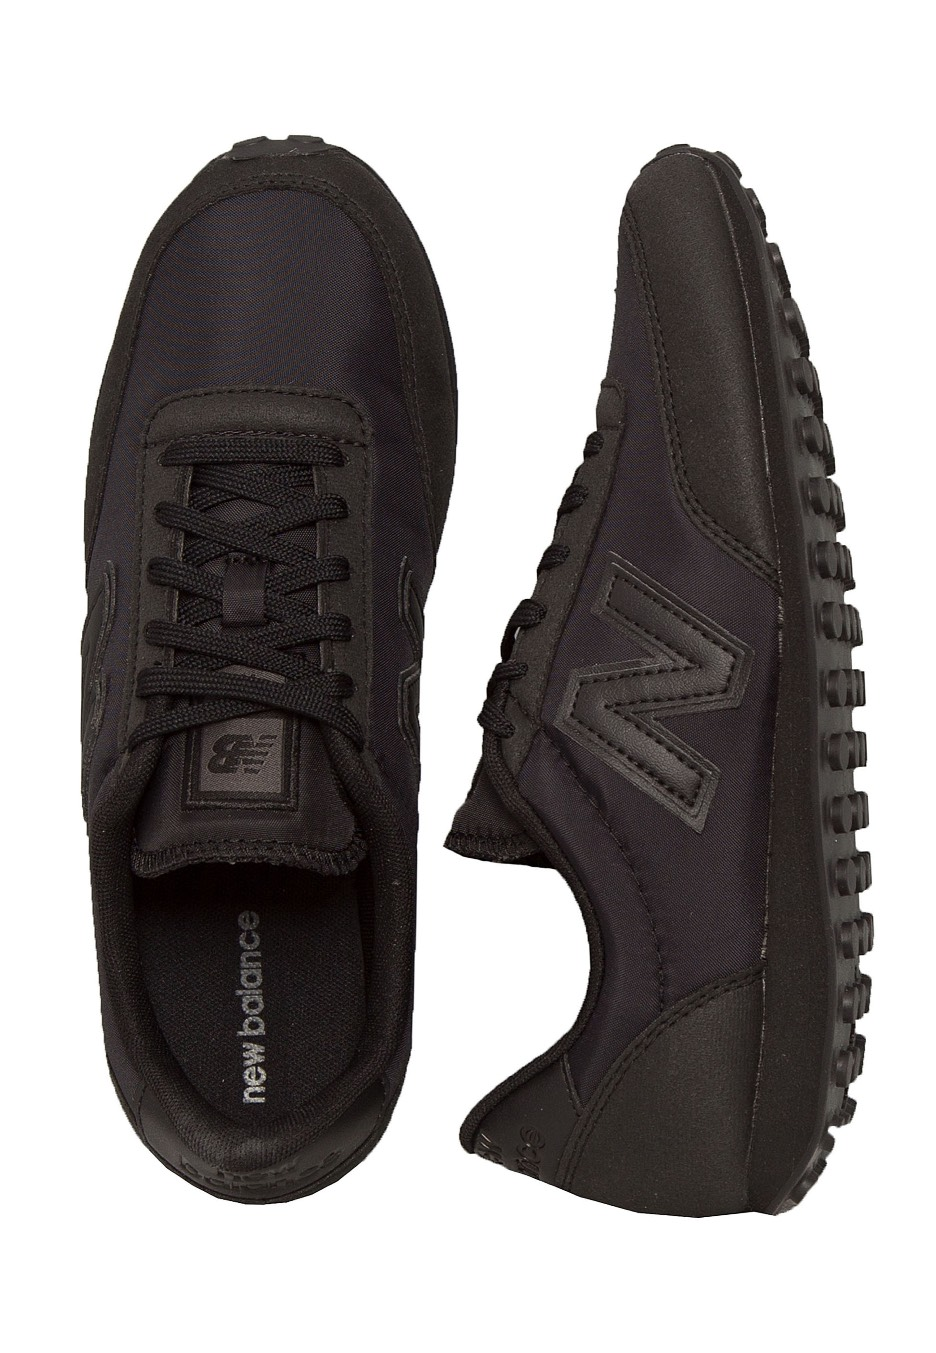 meilleure sélection c4c98 2c549 New Balance - U410 D Black - Girl Shoes